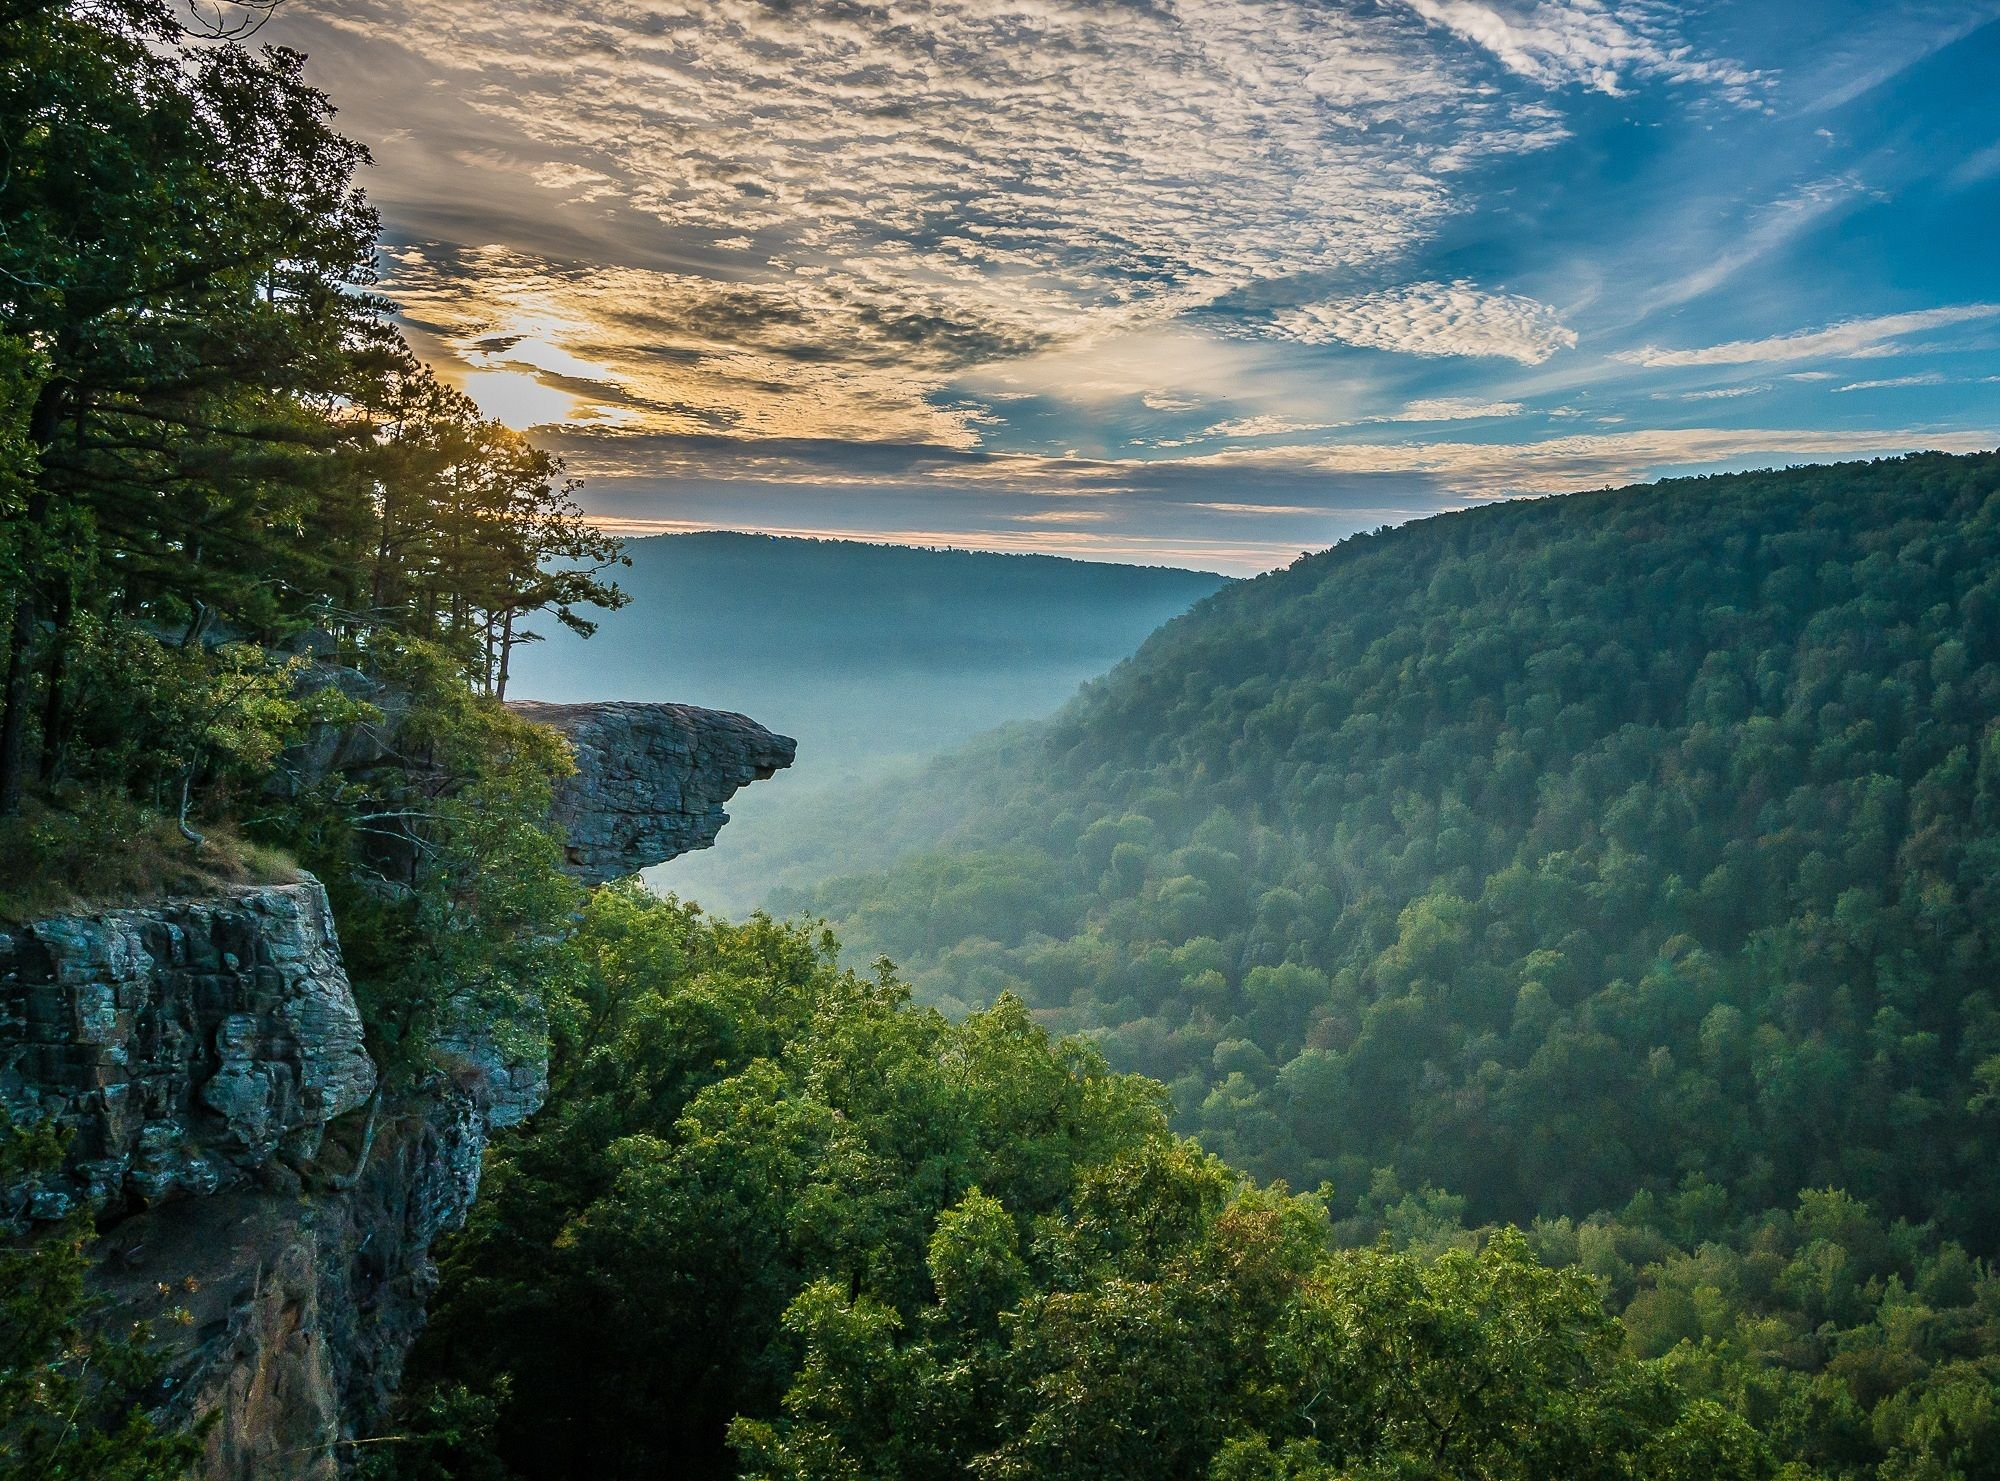 Hawksbill Crag Trail to Whitaker Point Perfect road trip